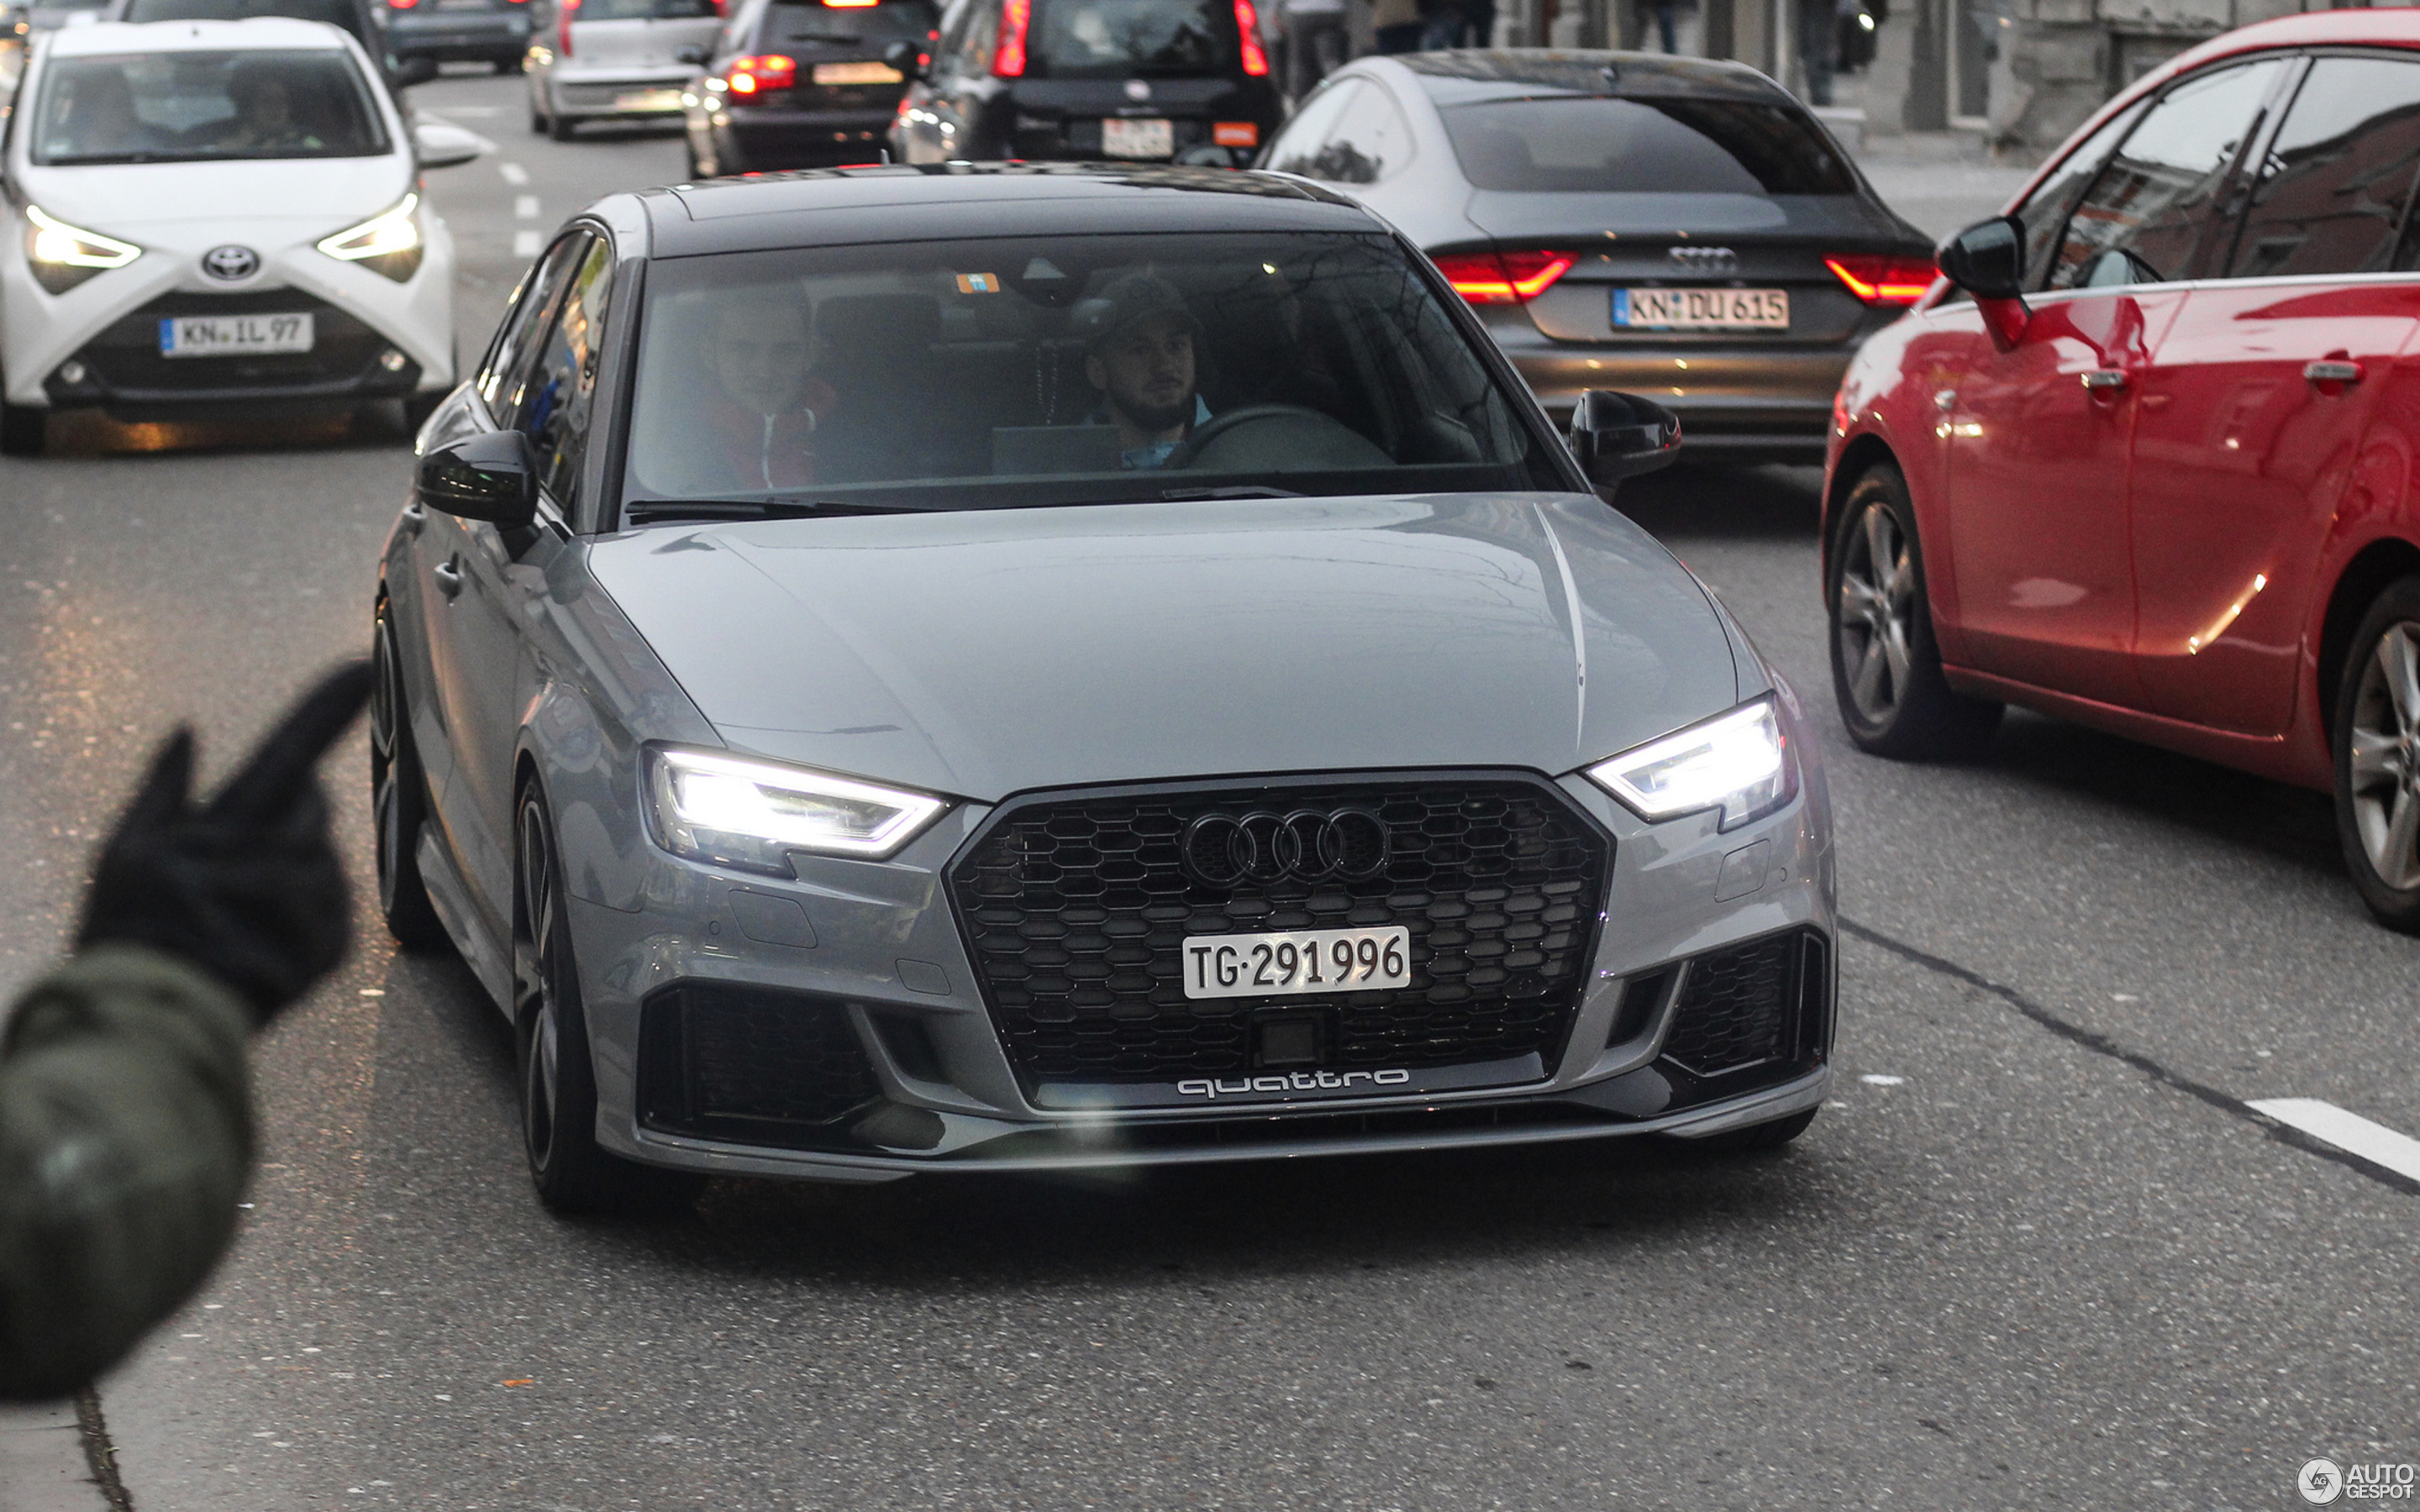 Audi RS3 Sedan 8V - 8 January 2019 - Autogespot